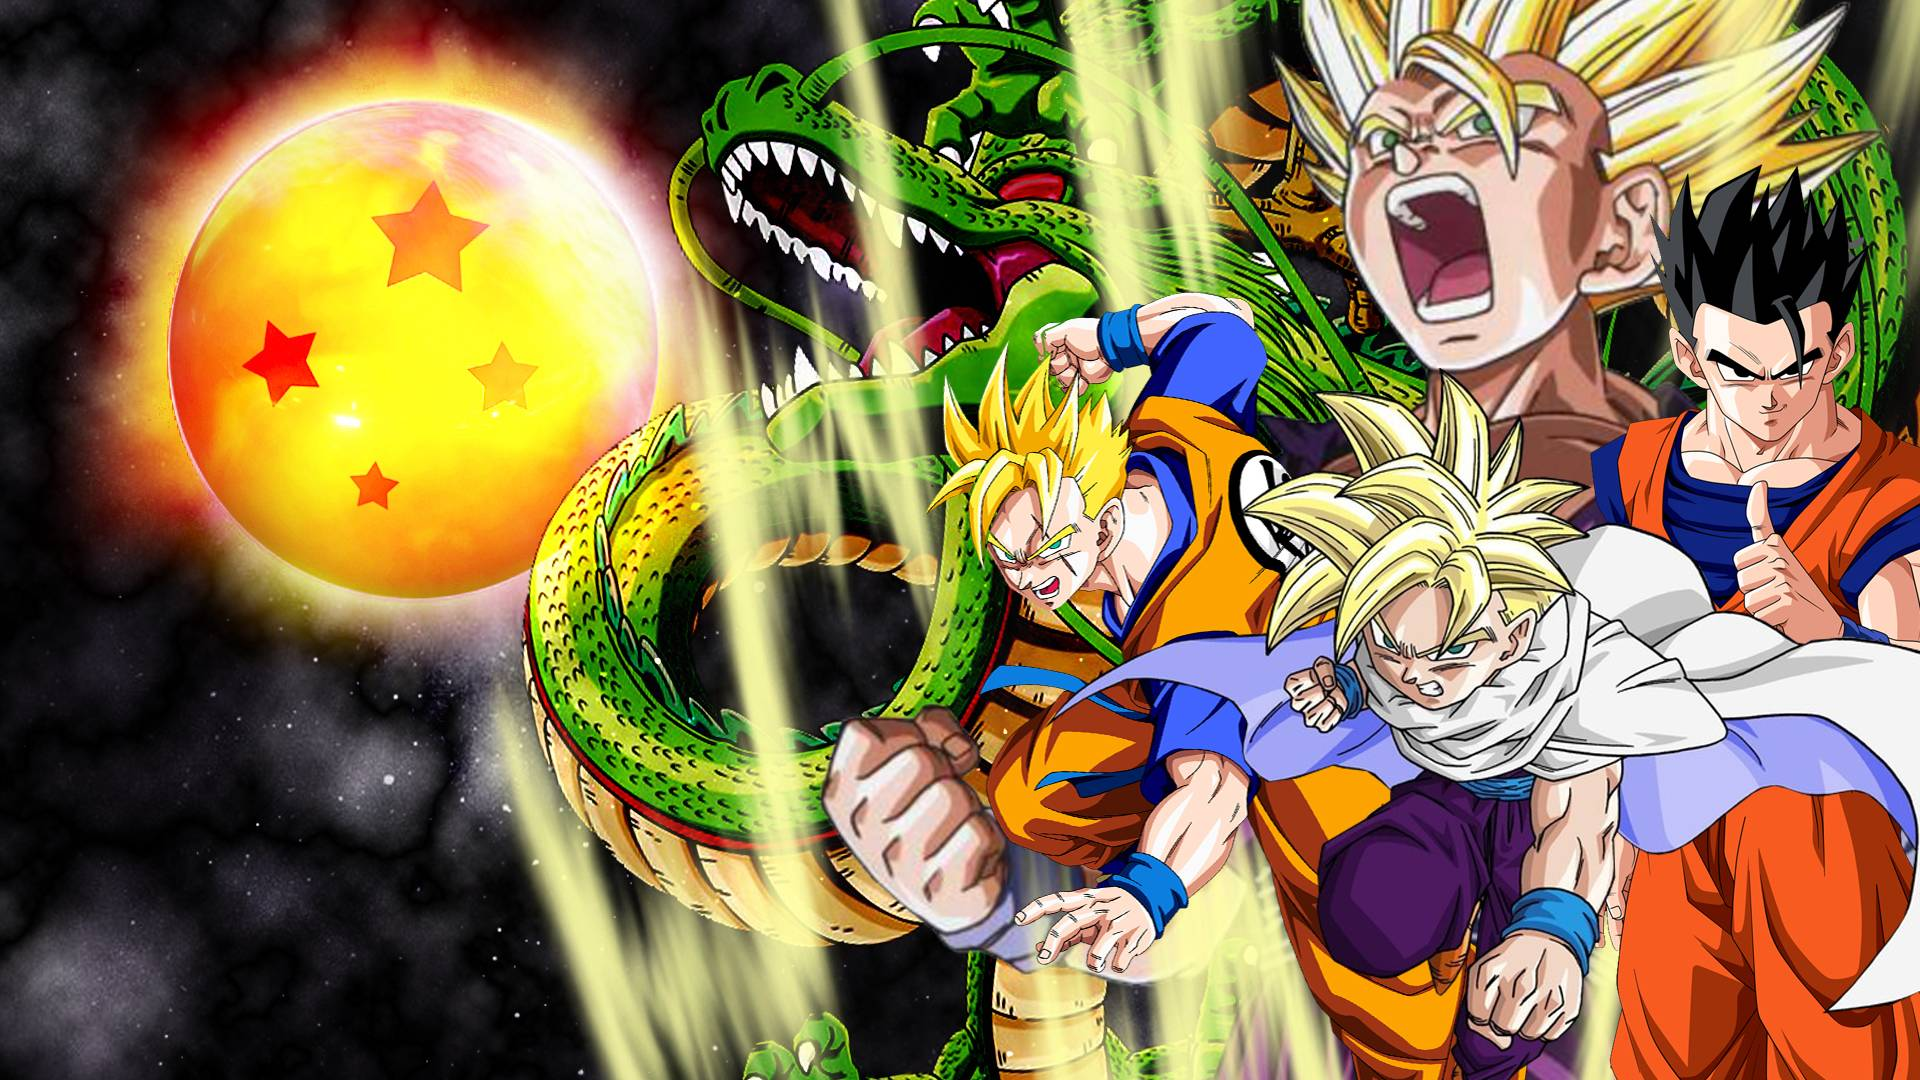 Gohan wallpapers wallpaper cave - Dragon ball z gohan images ...